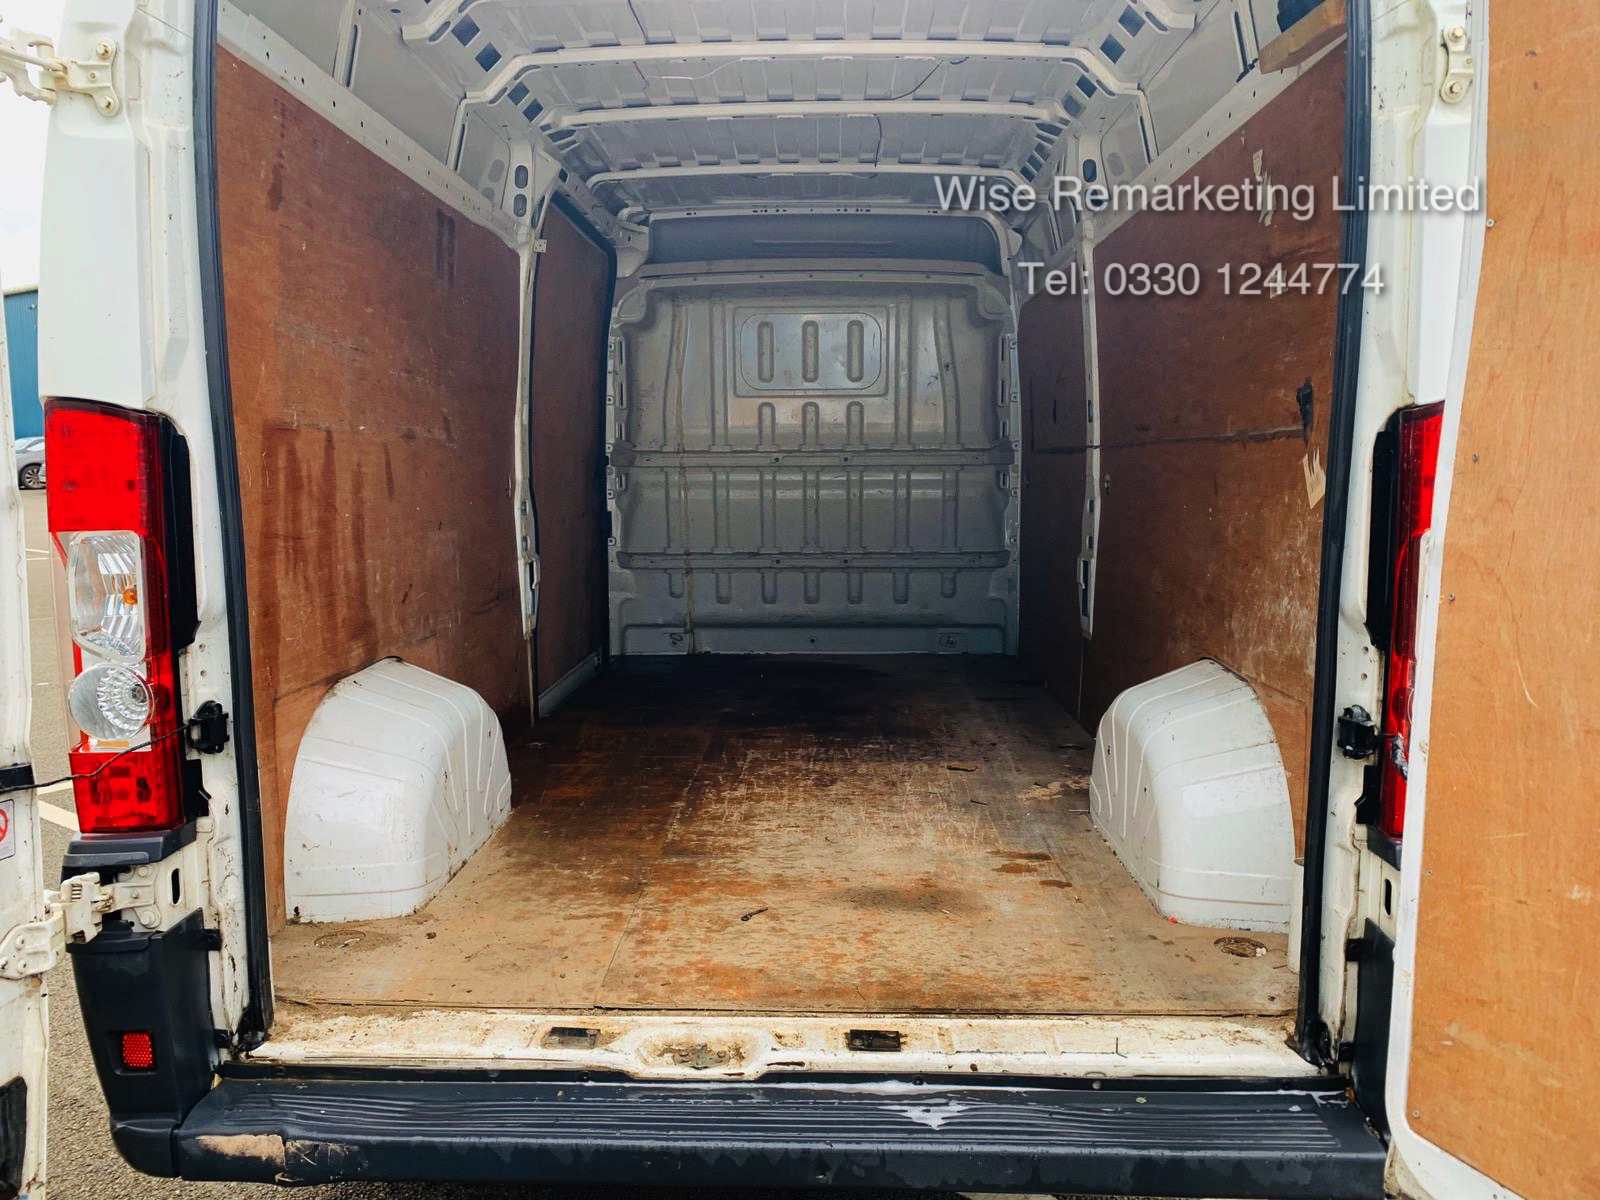 Citroen Relay 35 2.2 HDi (130 BHP) LWB 2012 12 Reg - 6 Speed - Ply Lined SAVE 20% NO VAT - Image 10 of 20